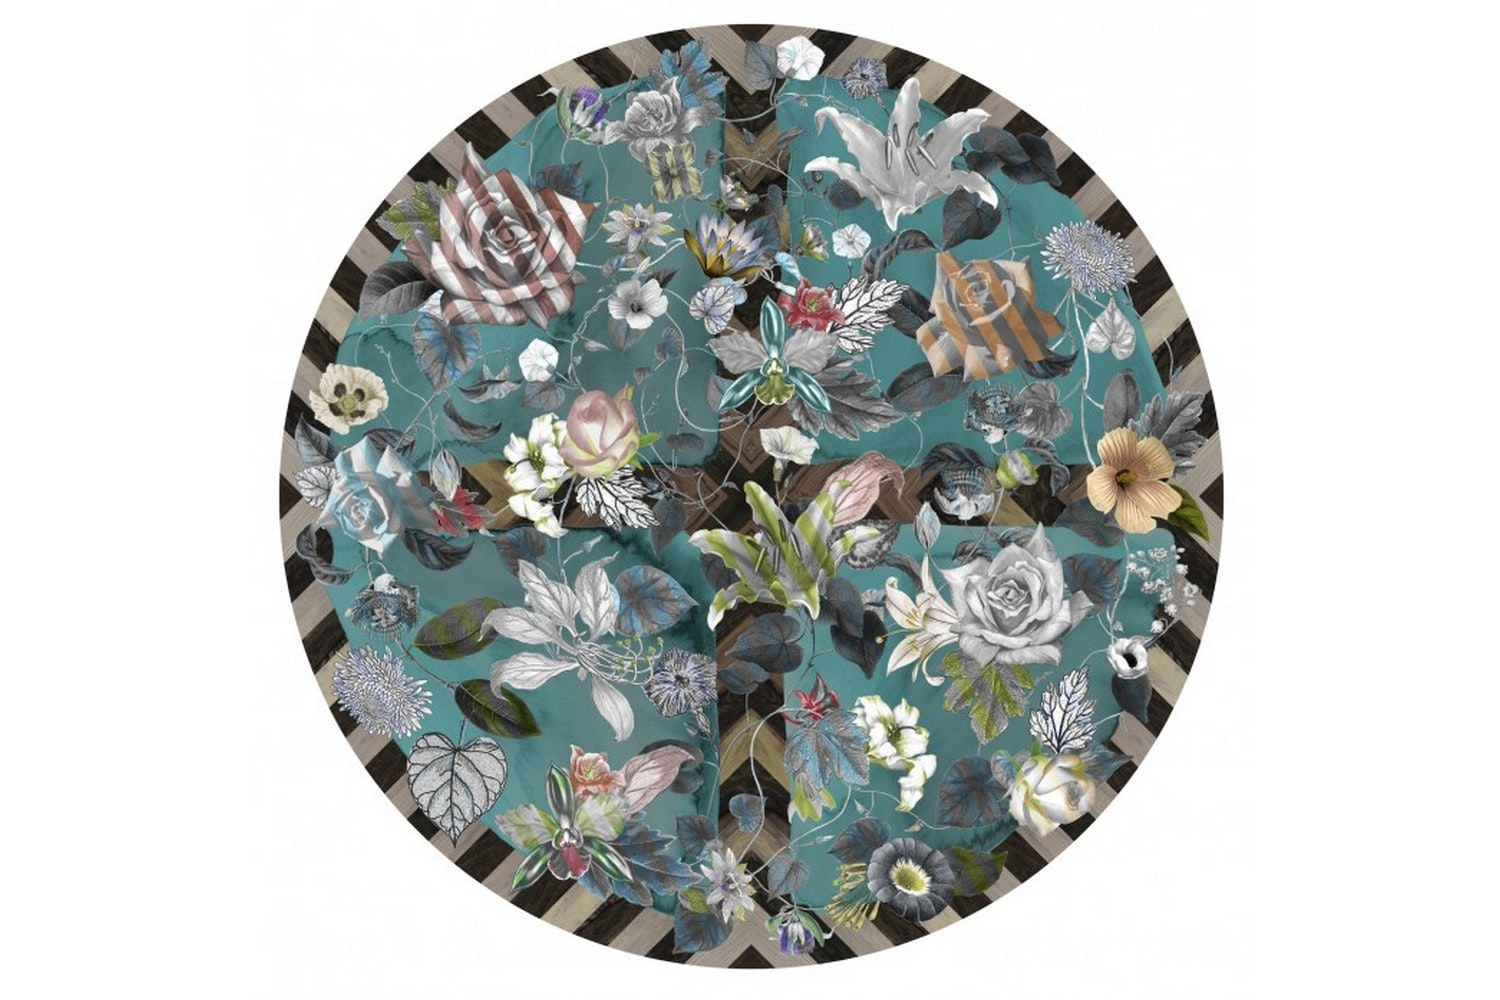 Malmaison Aquamarine Rug by Maison Christian Lacroix for Moooi Carpets